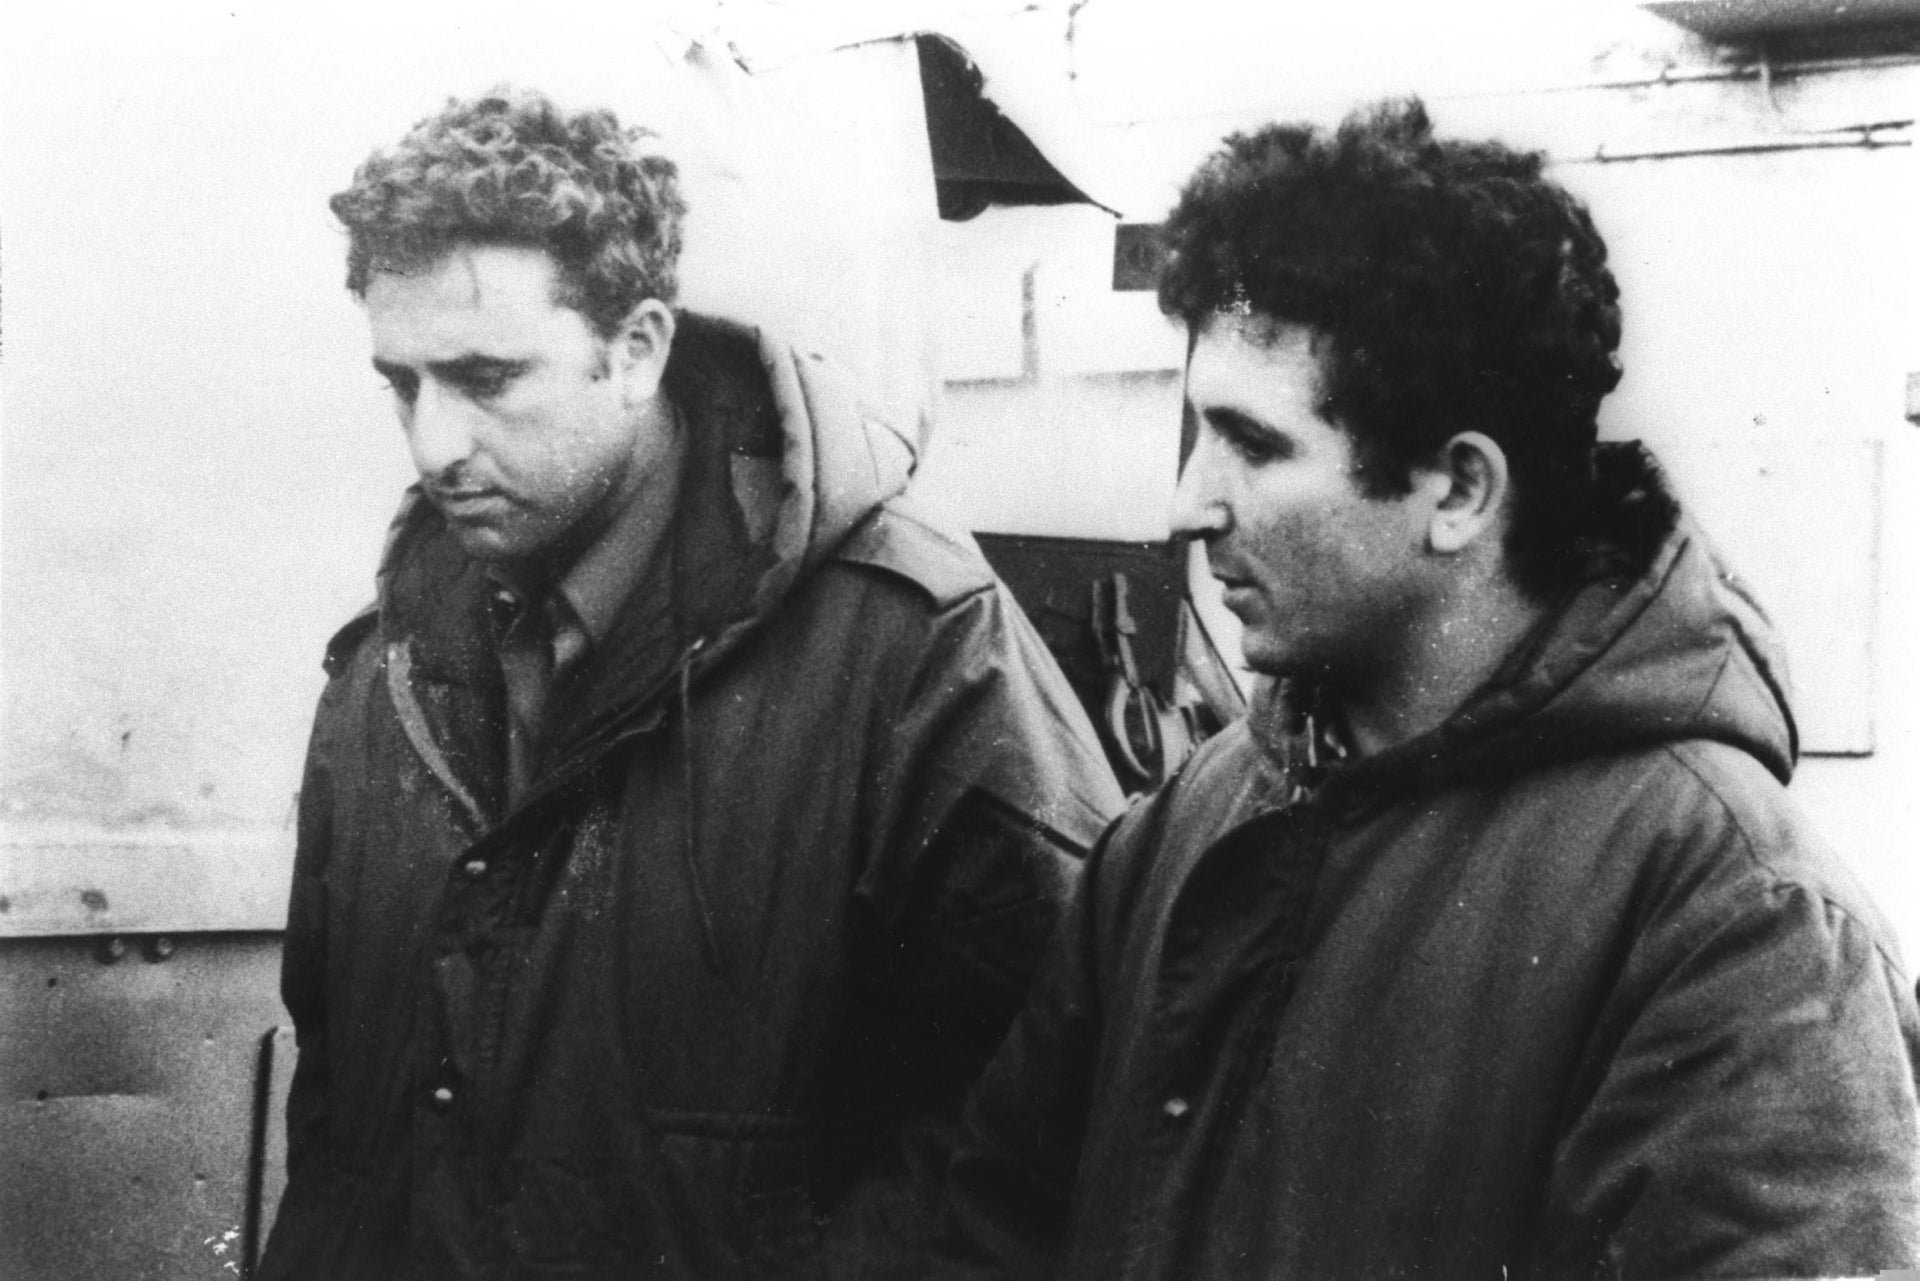 Ehud Barak, right, and Amnon Lipkin-Shahak when they were commandos in the Israel Defense Forces in the mid-1970s.